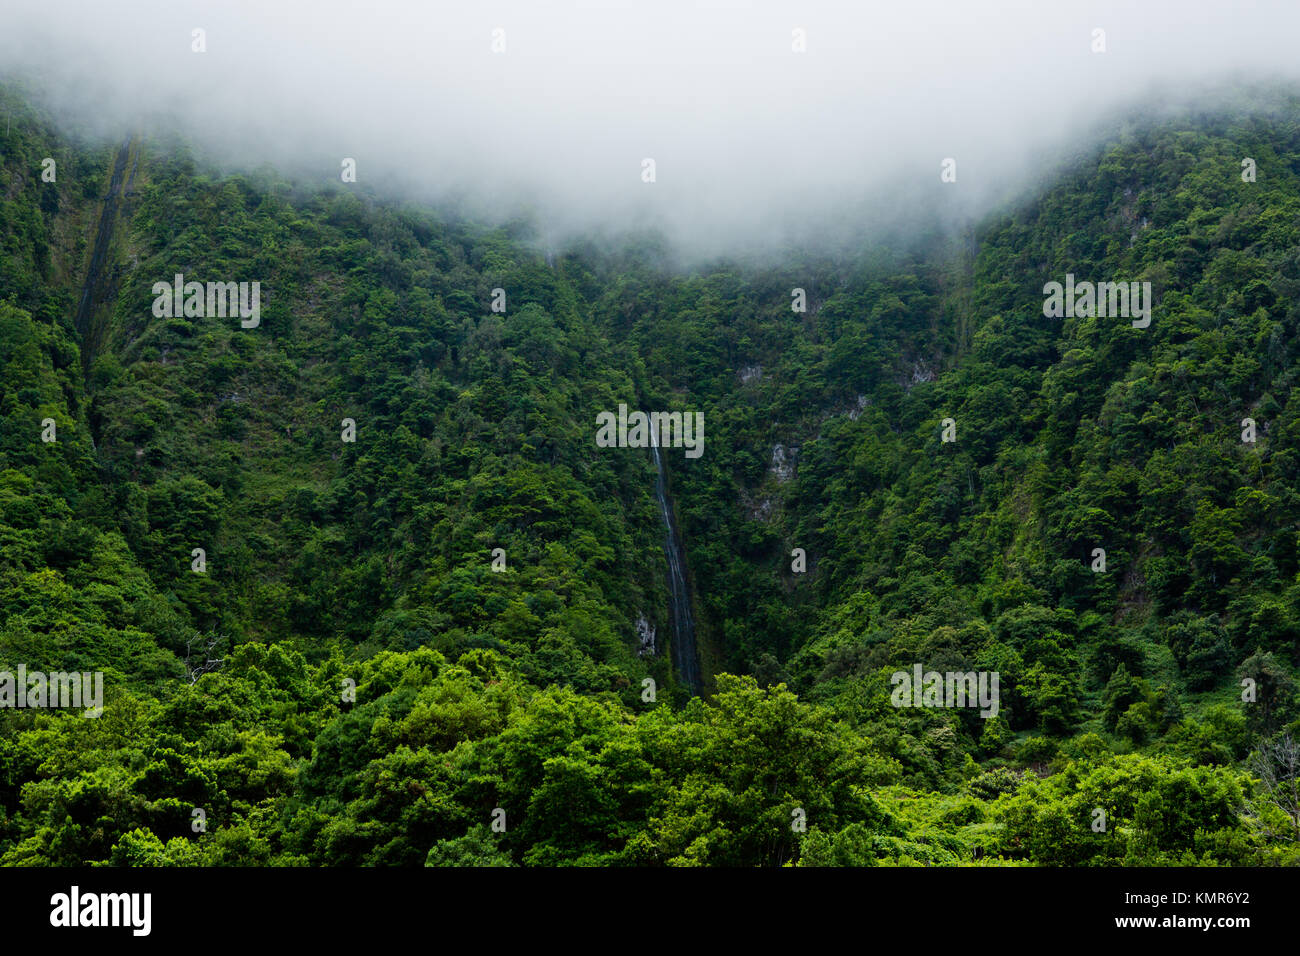 Jungel waterfall mountain - trekking and wandering on levada trails Madeira Portugal - Stock Image